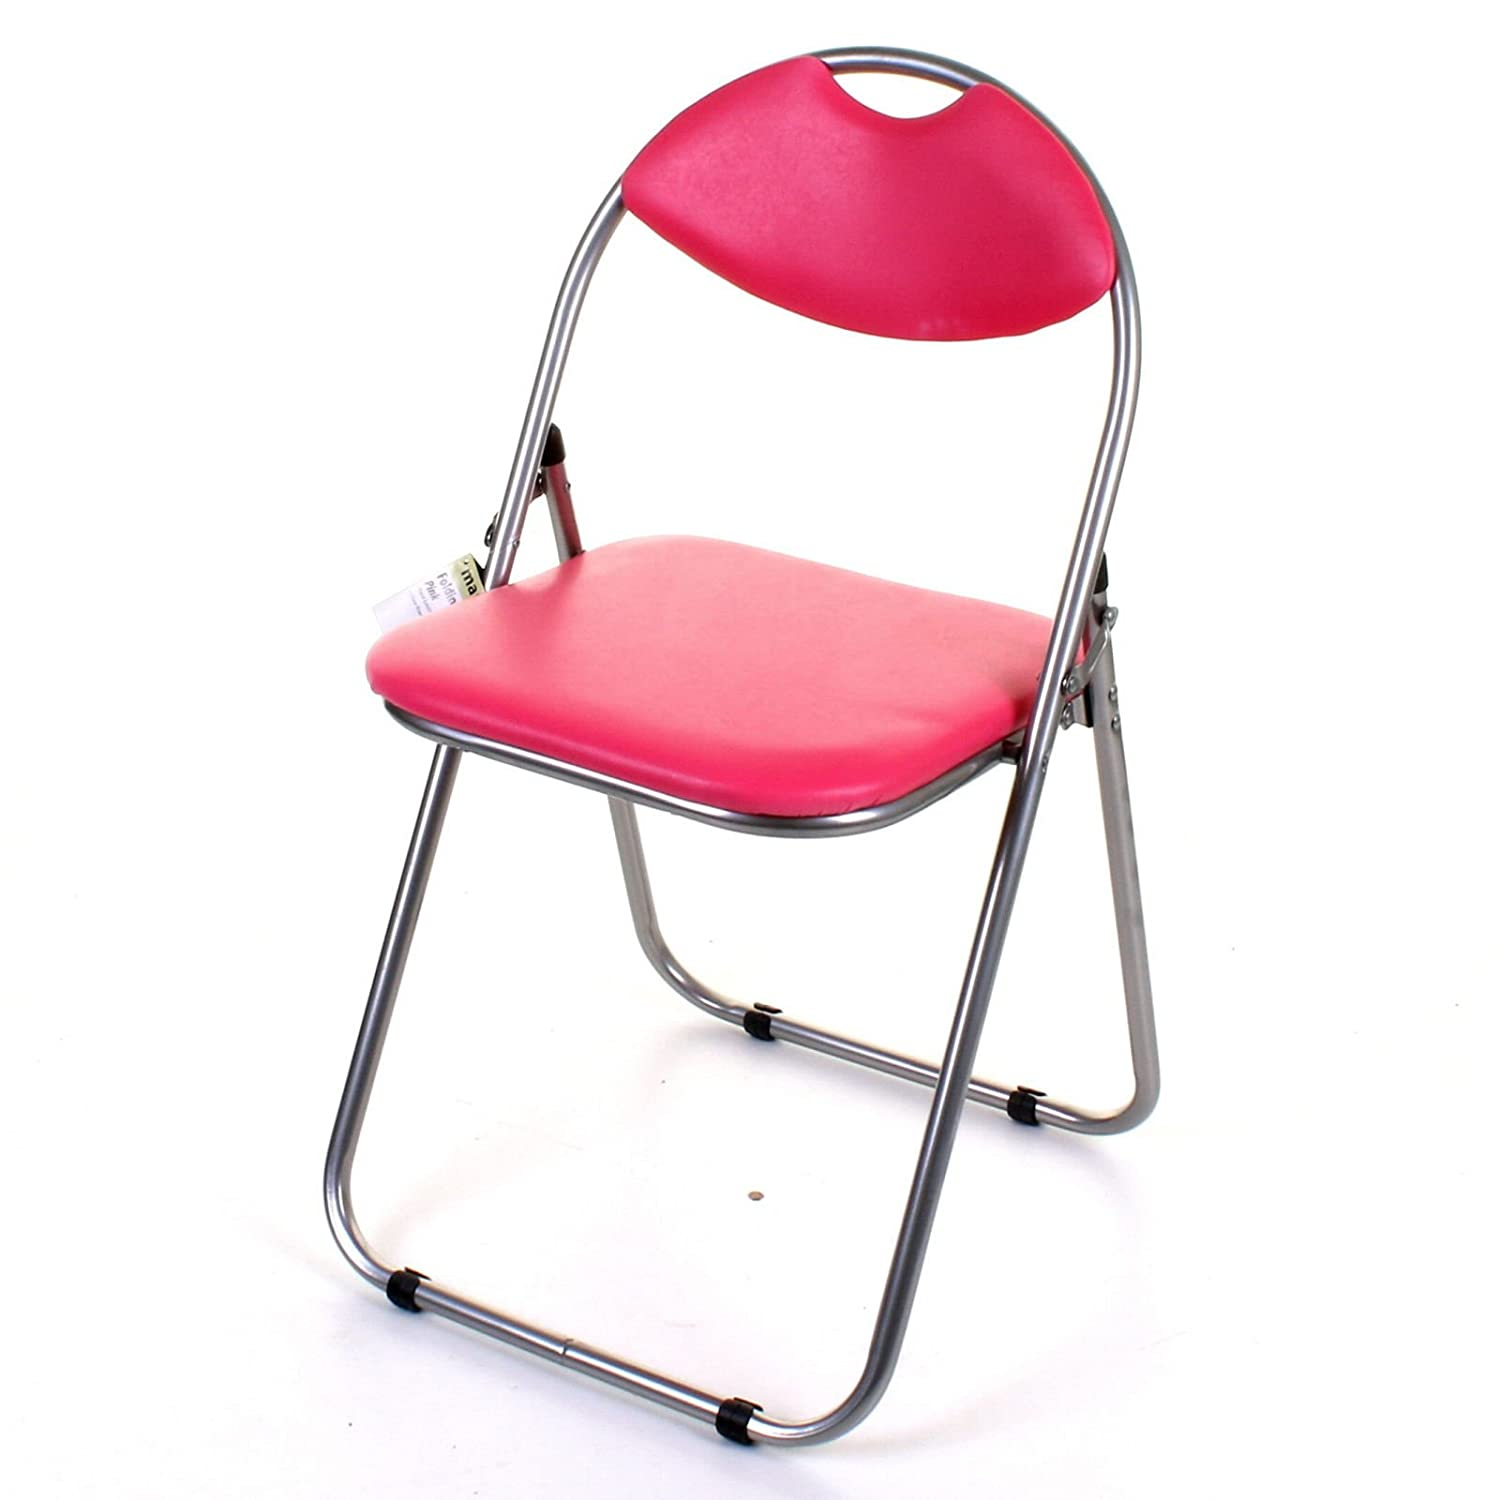 Marko Furniture Black & Pink Faux Leather Folding Chair Padded Seat & Back Rest Computer Office (Black)